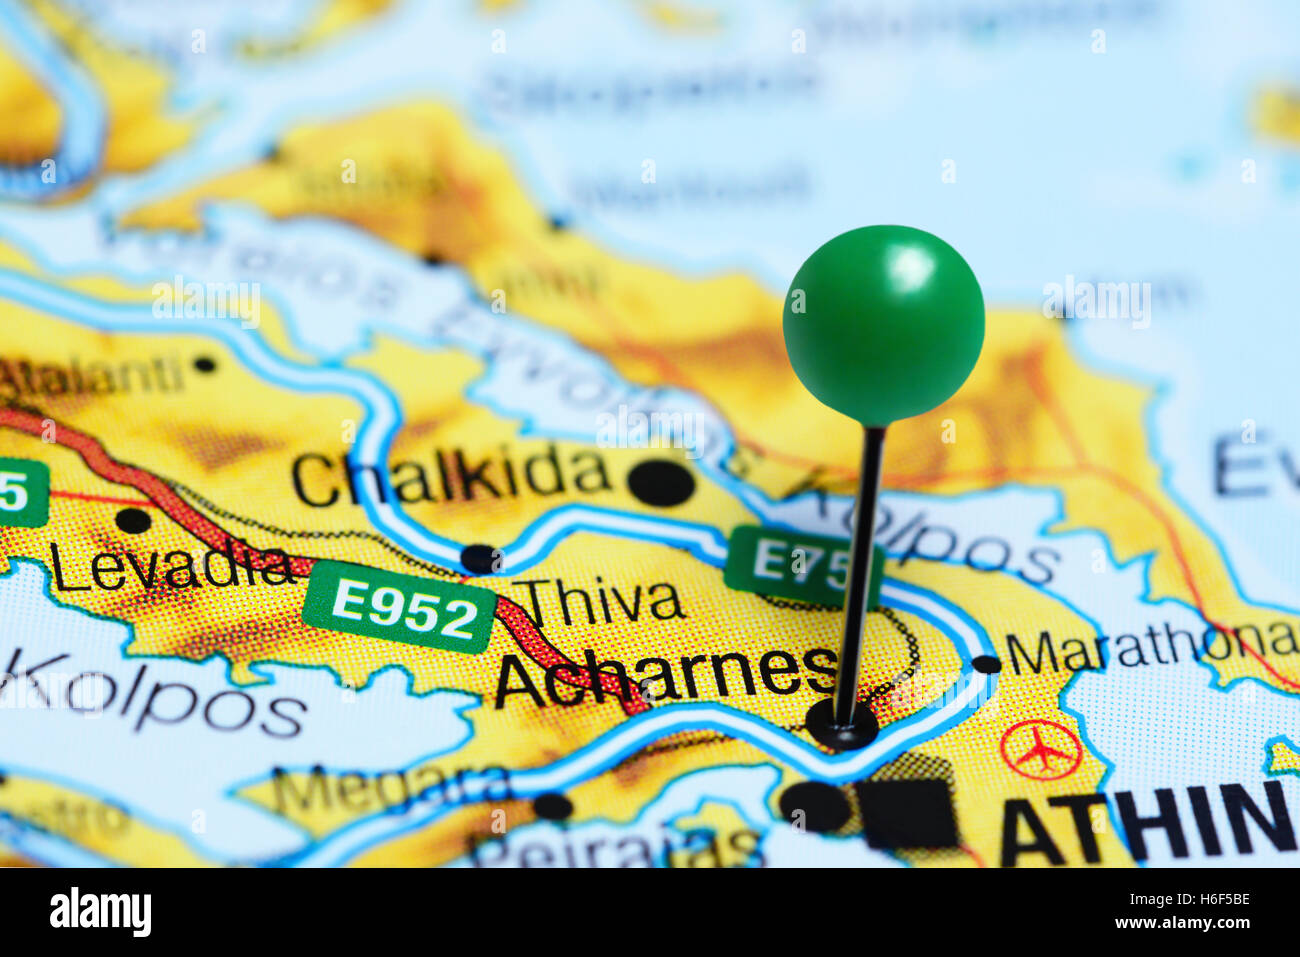 Acharnes pinned on a map of Greece Stock Photo Royalty Free Image